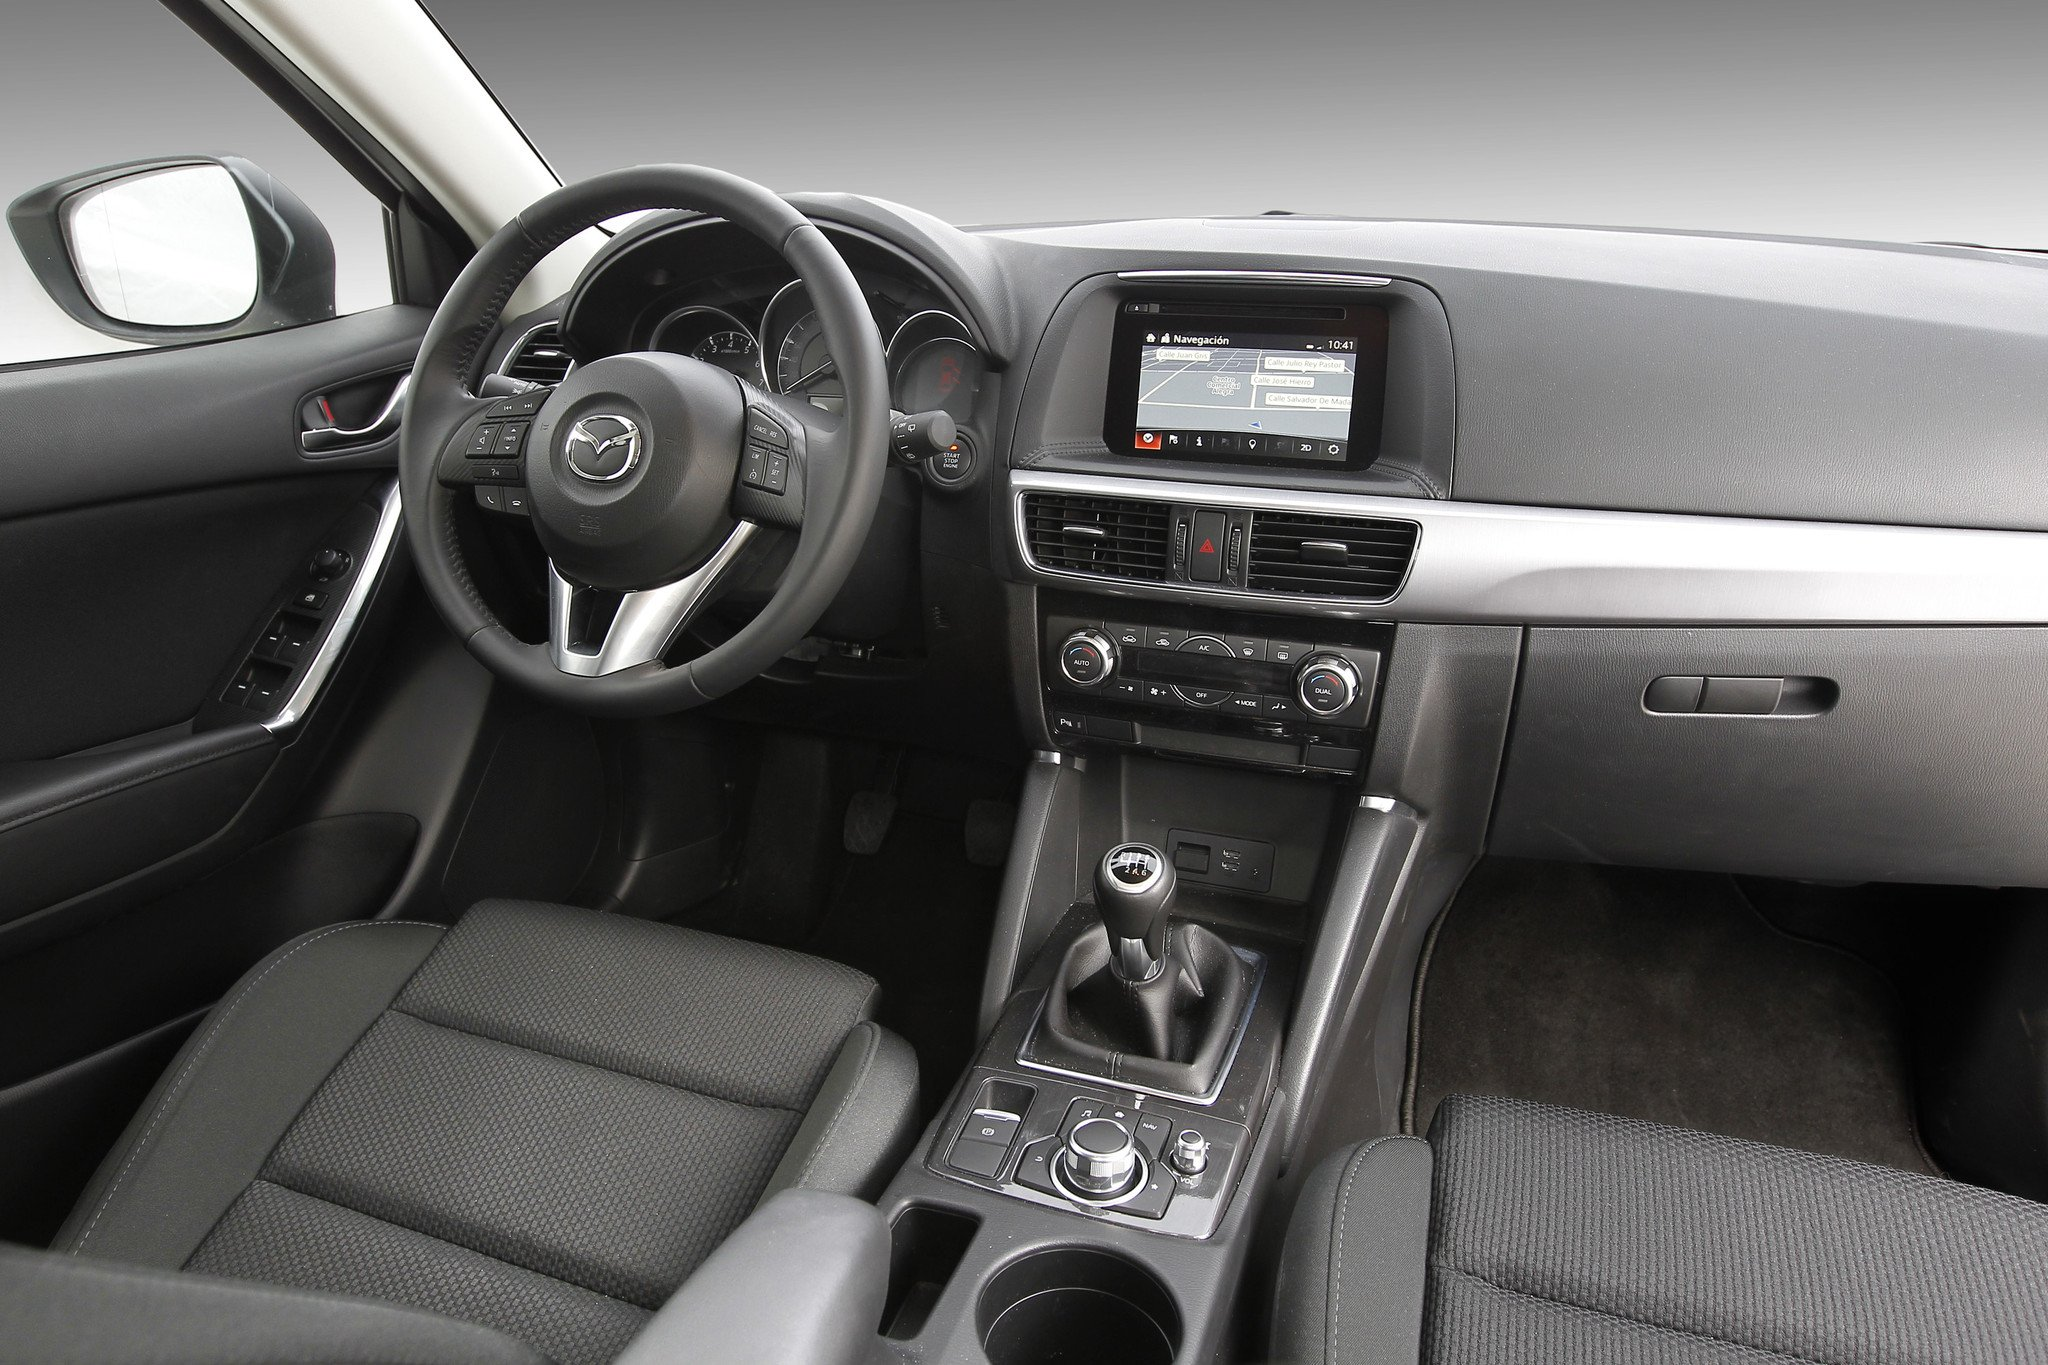 prueba mazda cx 5 2 0 2wd la versi n b sica del suv de mazda a examen. Black Bedroom Furniture Sets. Home Design Ideas